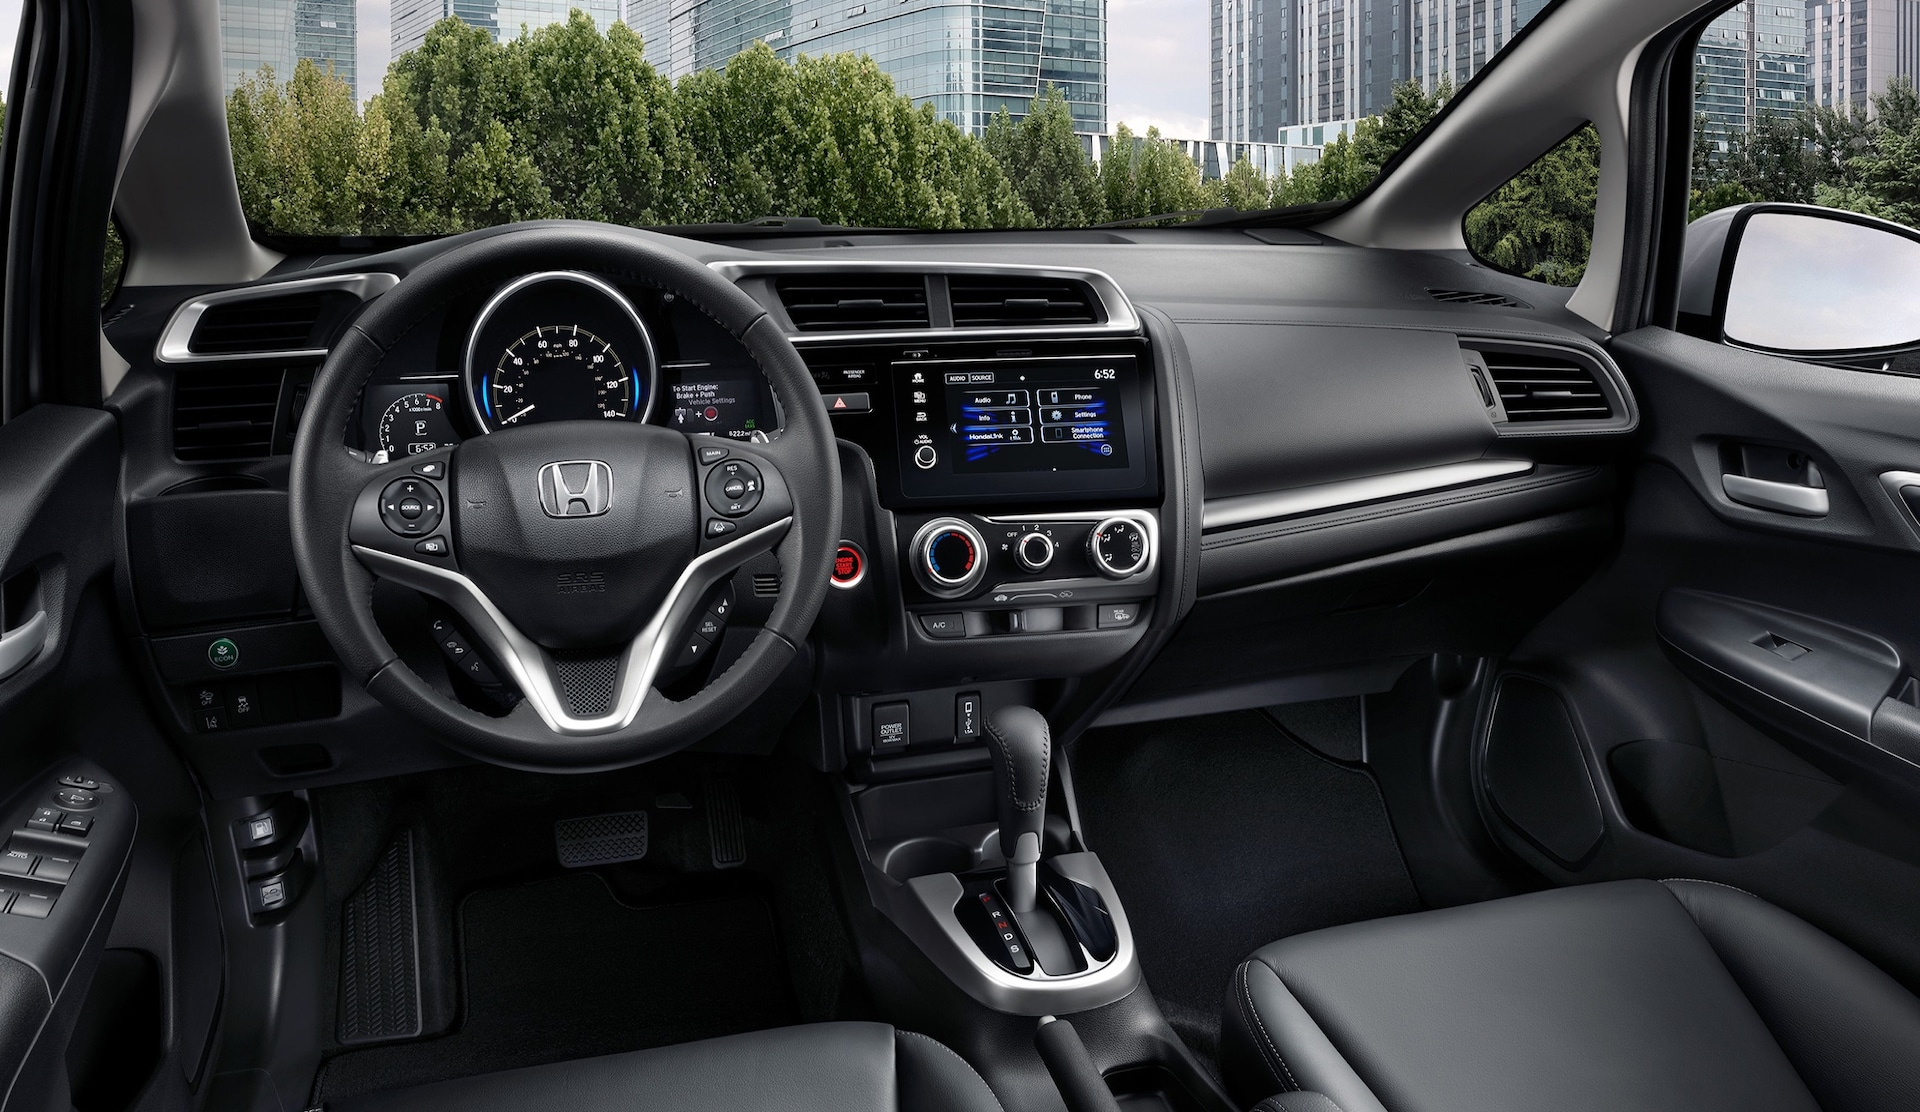 Interior view of the 2020 Honda Fit EX-L in Black Leather.